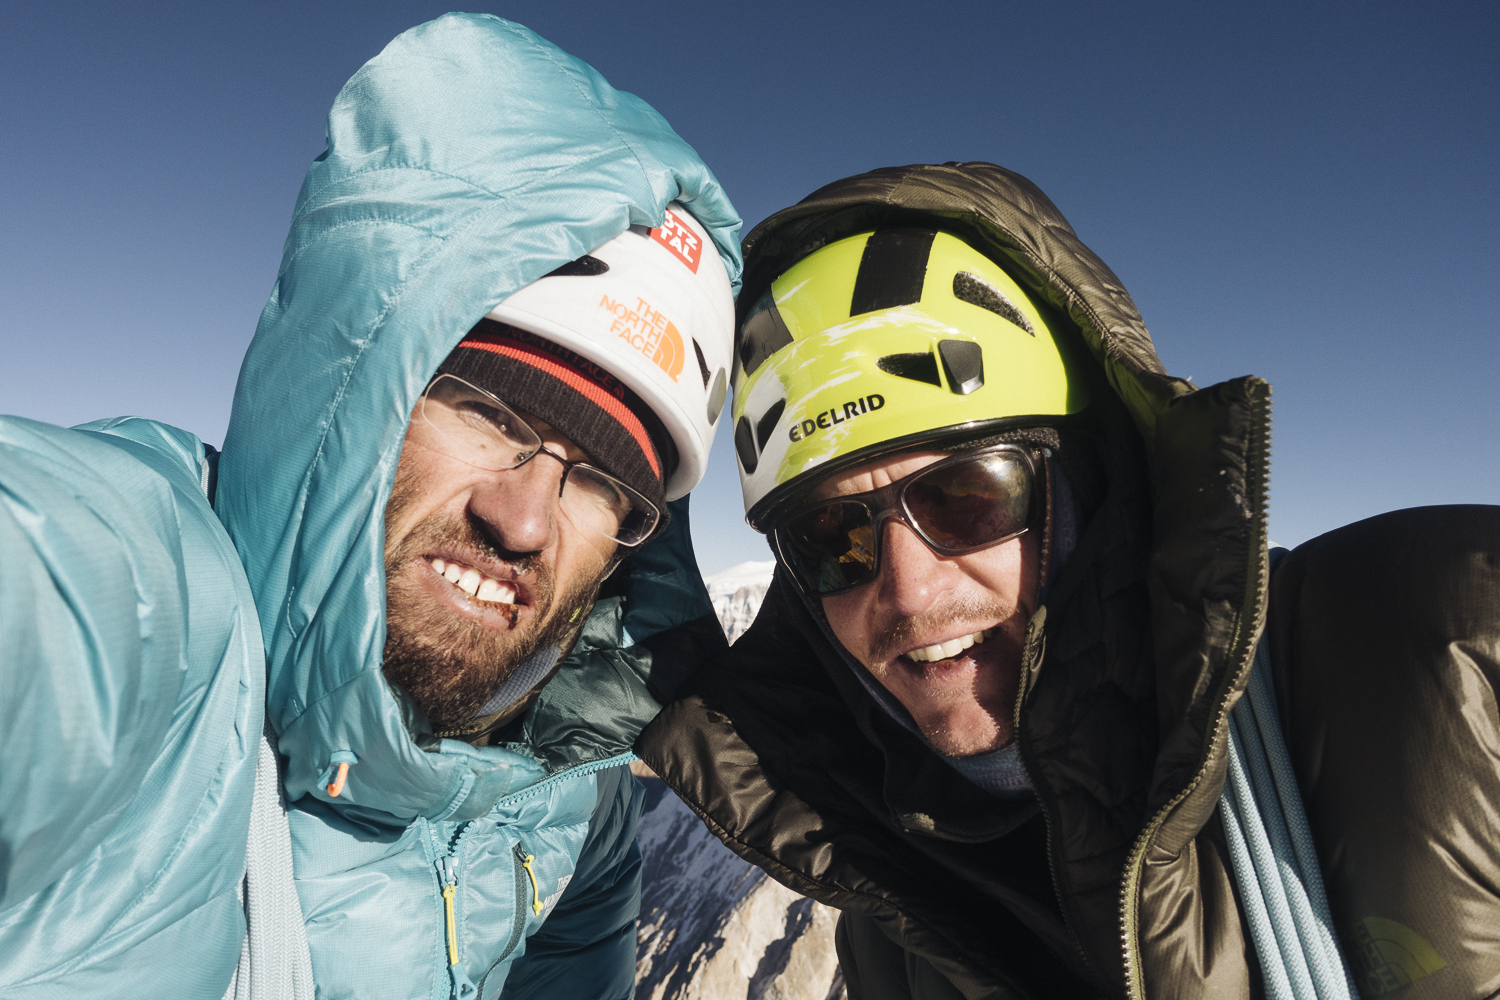 Summit shot with Auer, left, and Blumel. [Photo] Hansjorg Auer